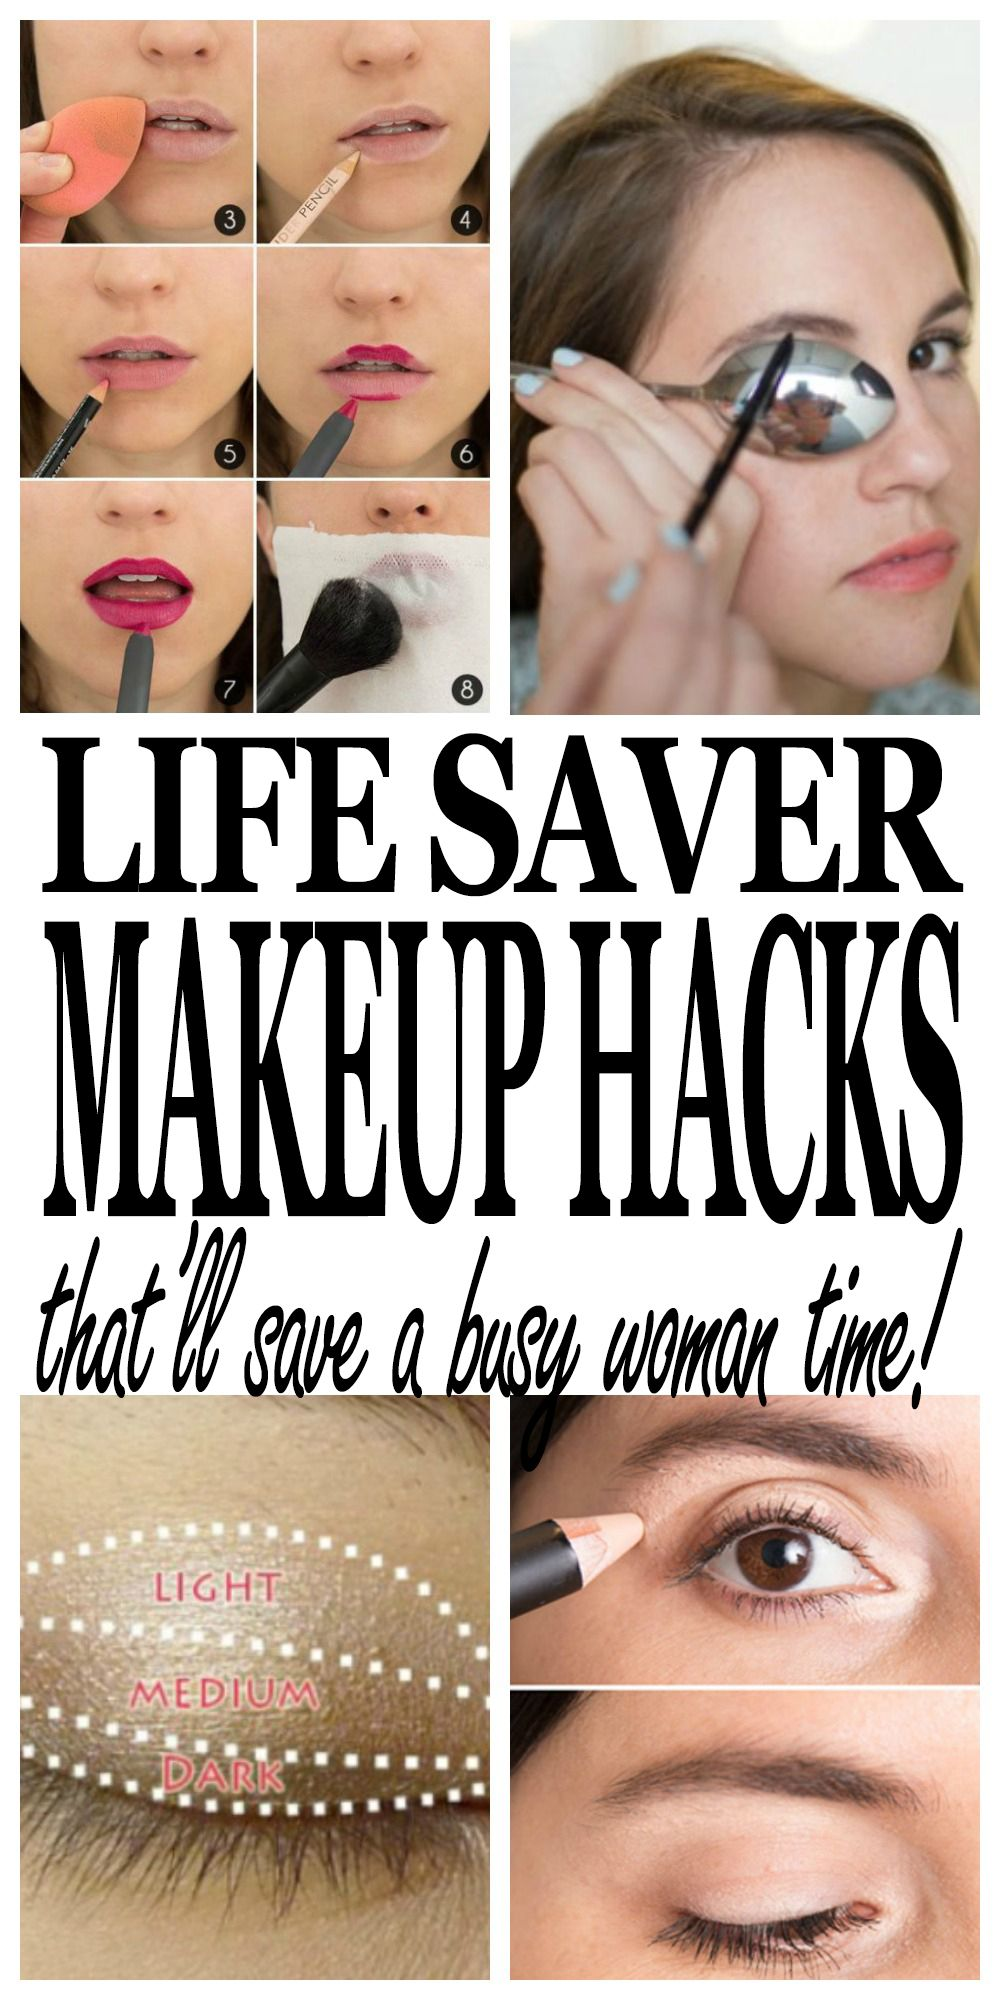 Makeup hacks every girl needs to know